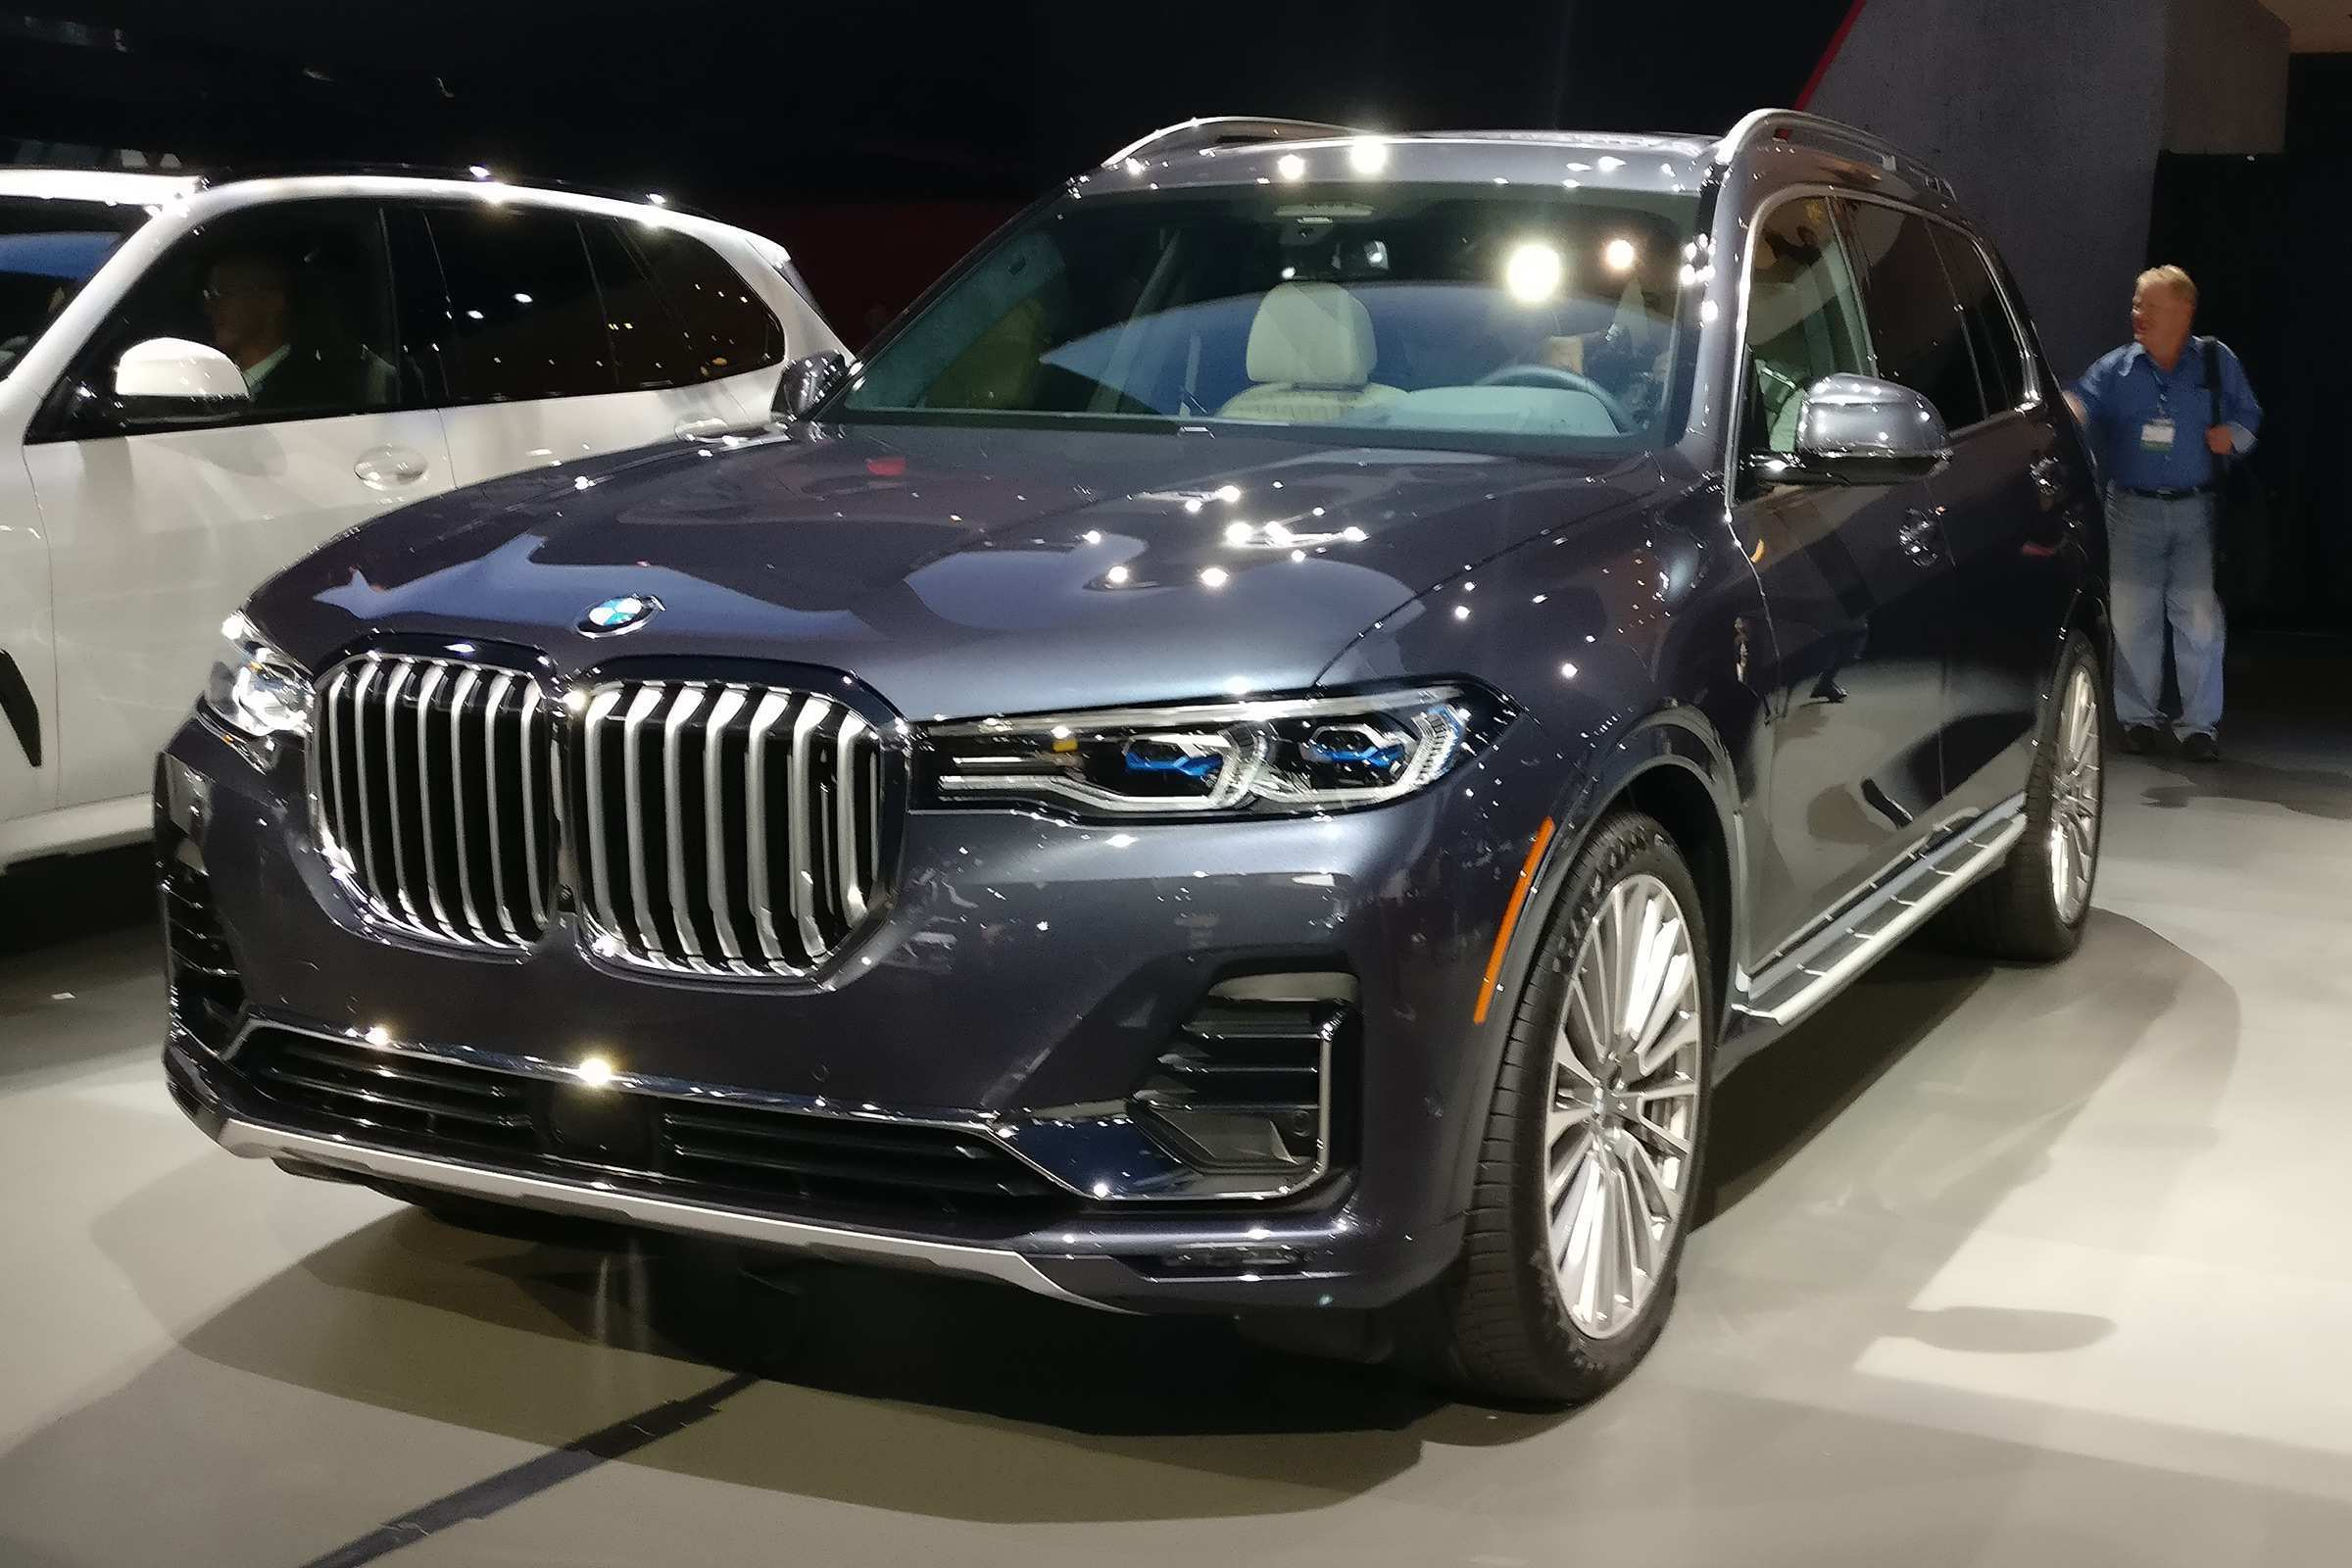 44 New 2020 BMW X7 Release Date